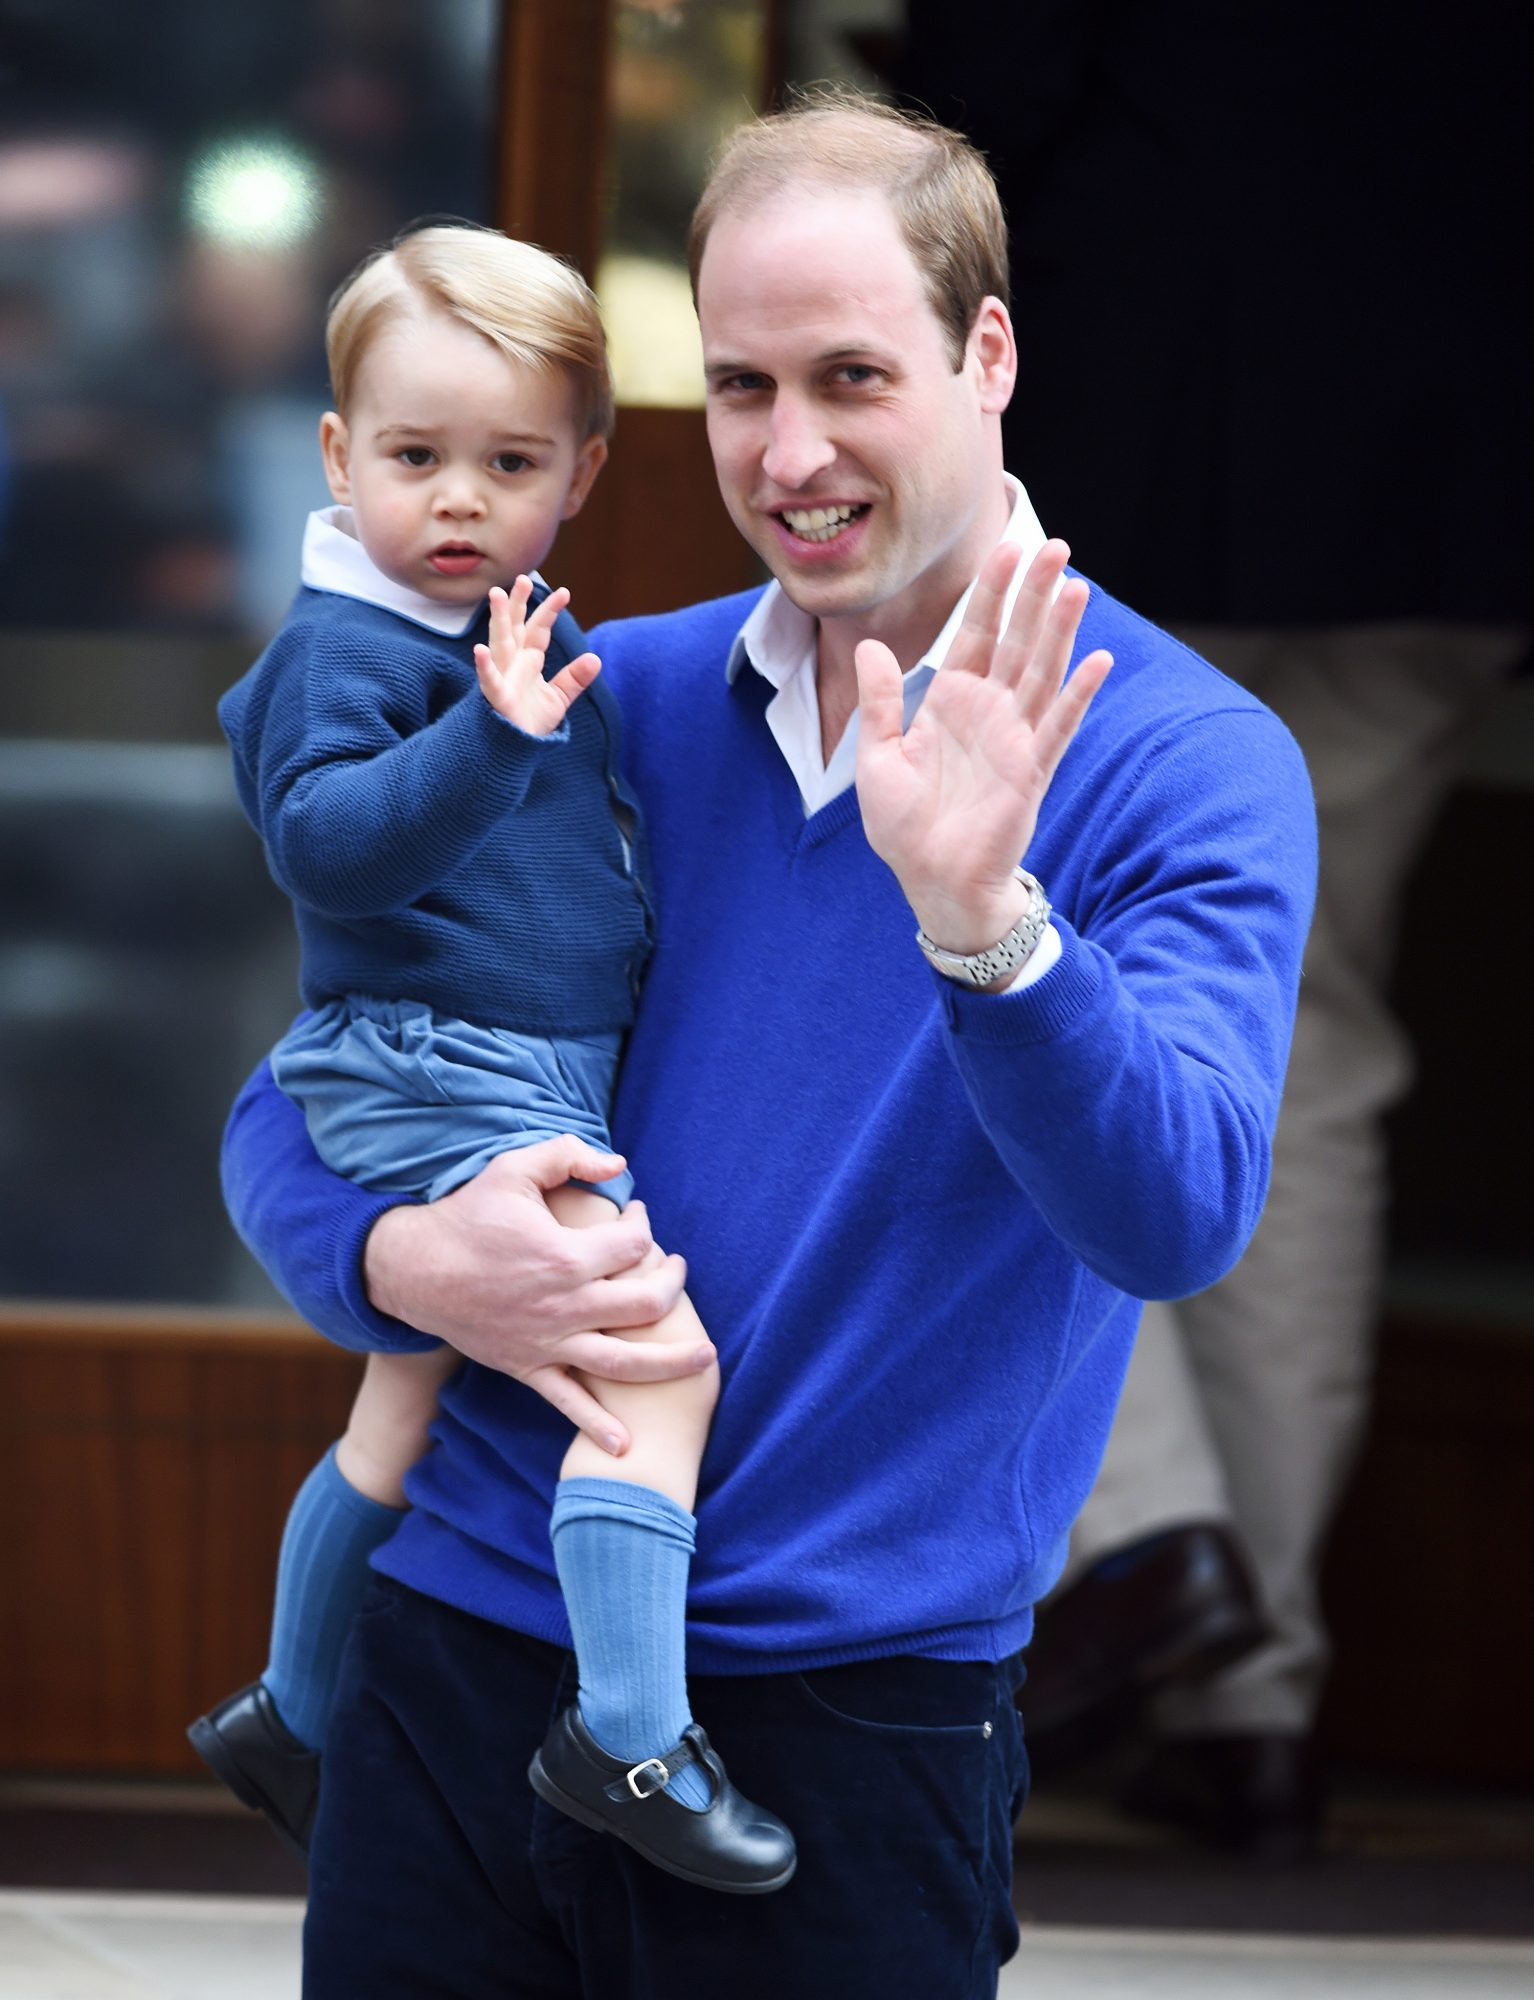 Prince William Debuted a Shaved Head Today: Compare the Before-and-After Photos